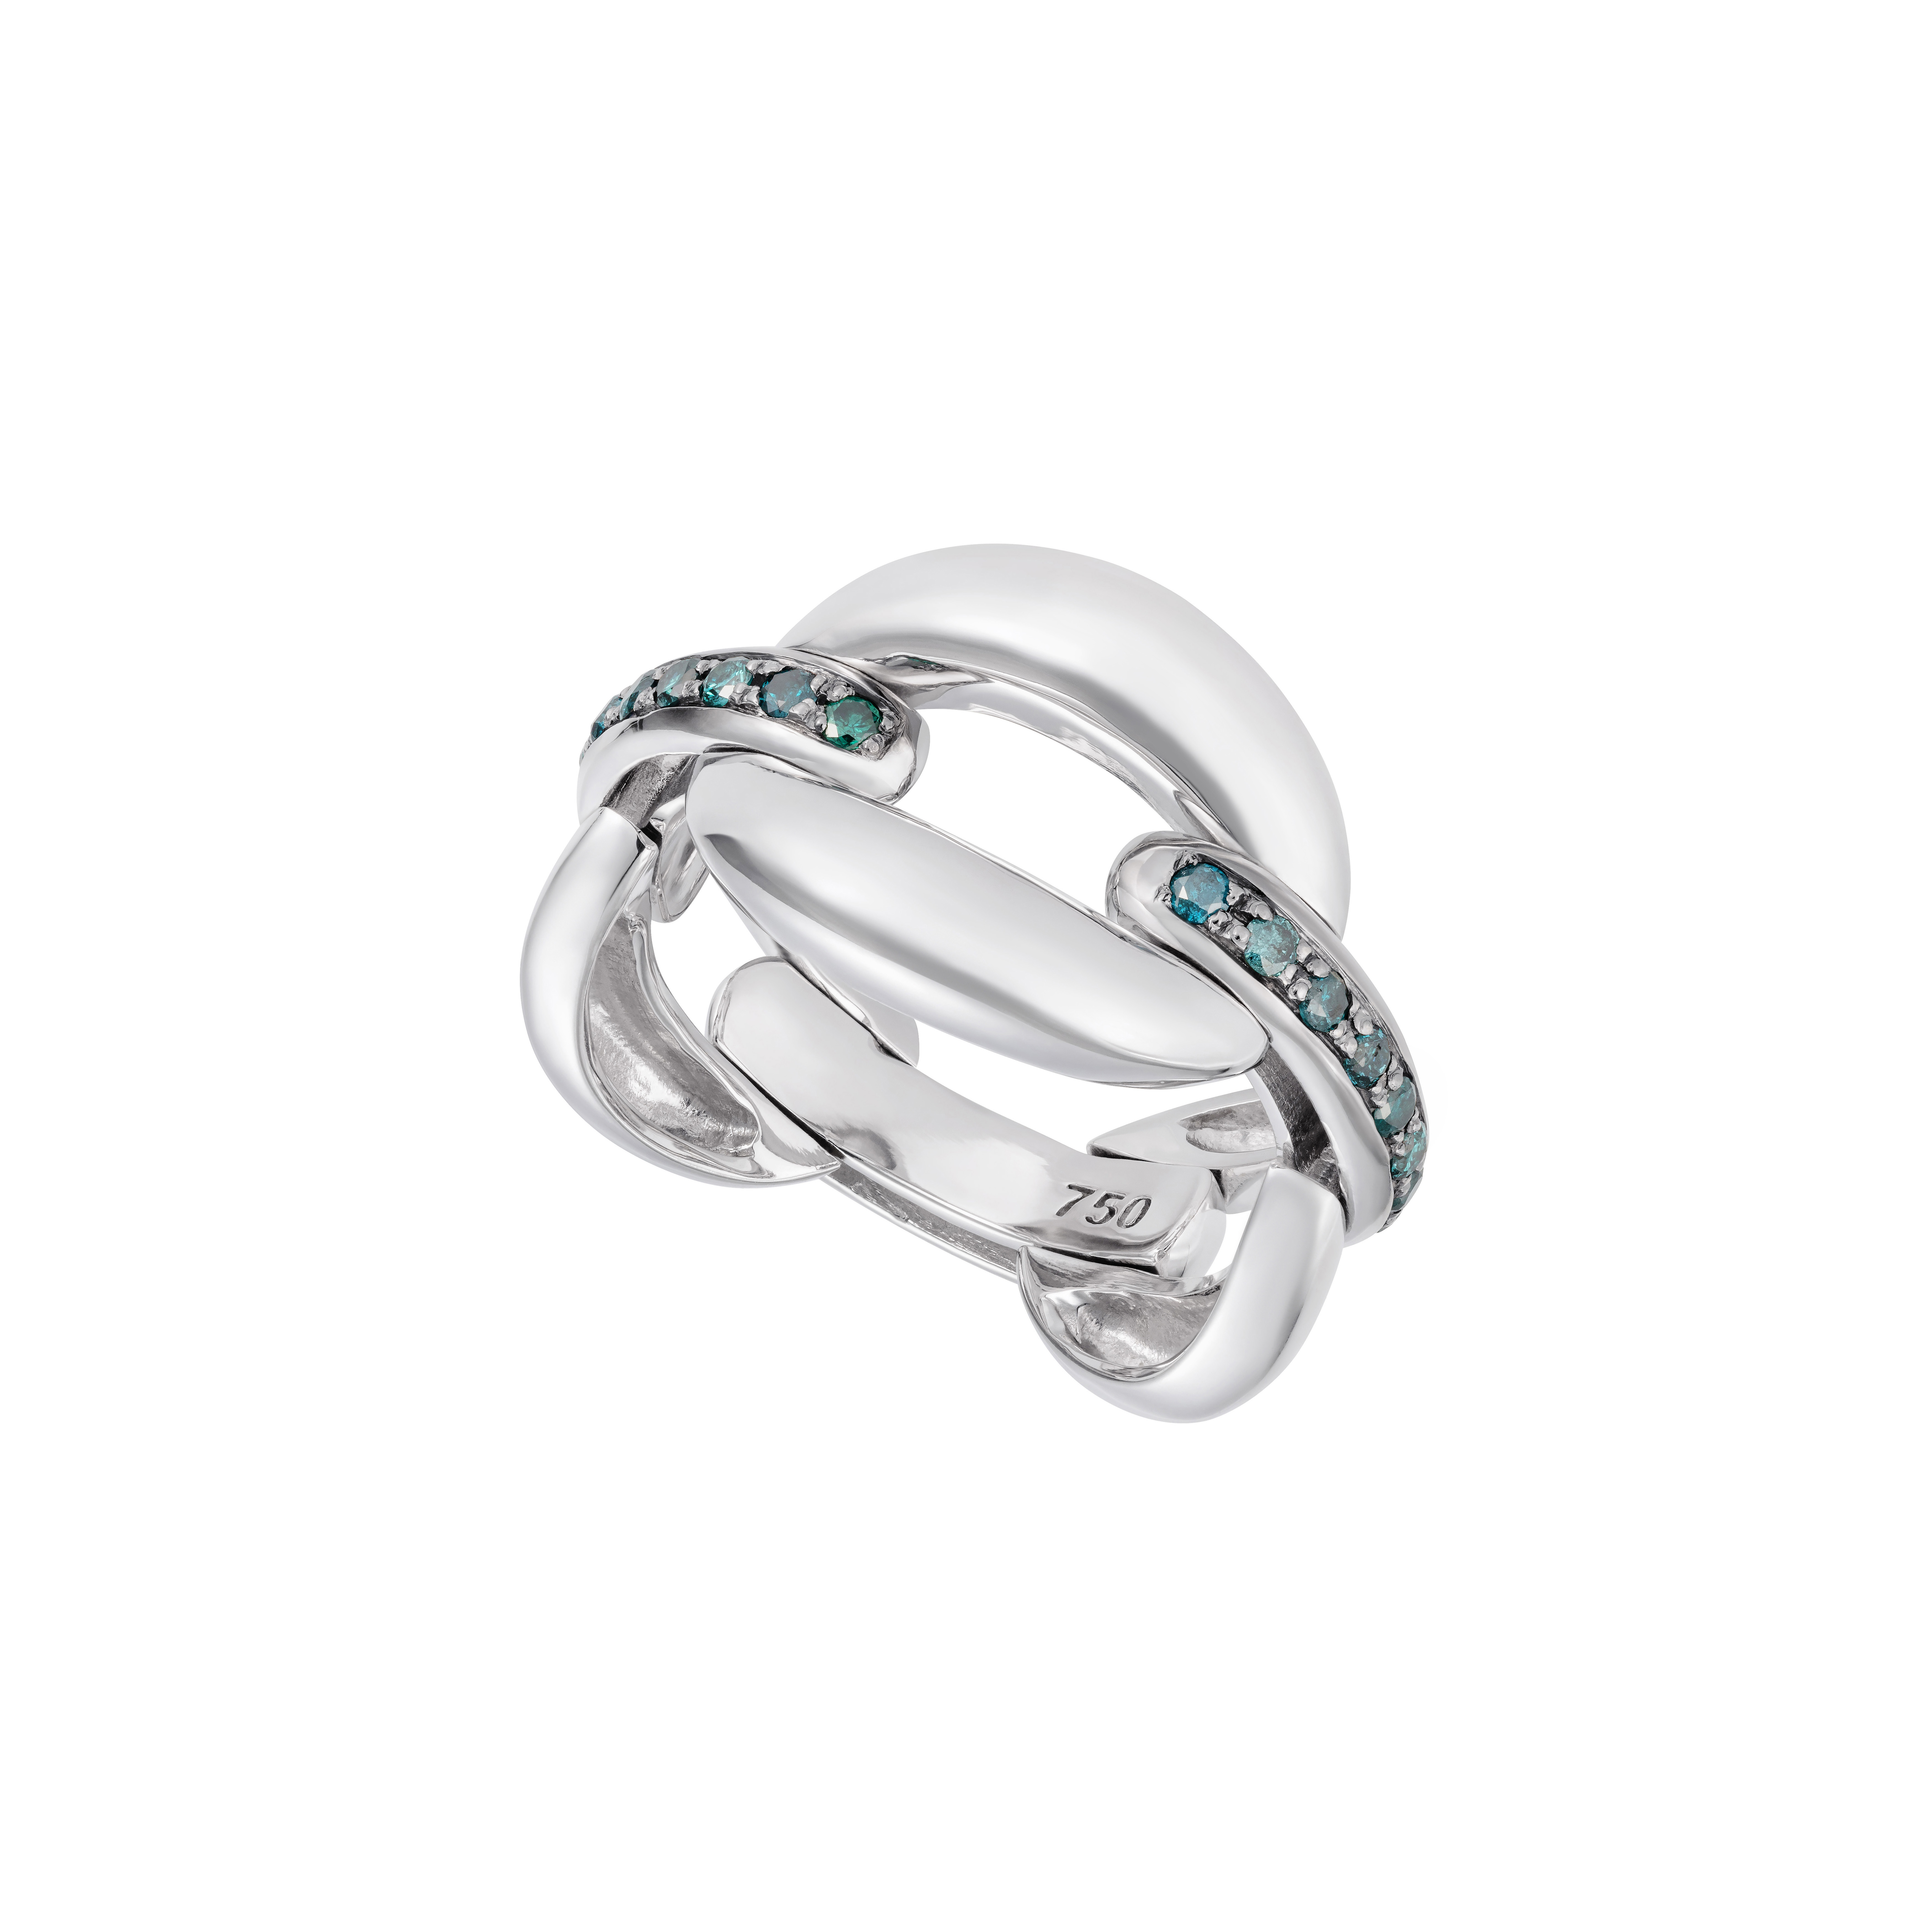 Catena White Gold Ring by Nadine Aysoy on curated-crowd.com